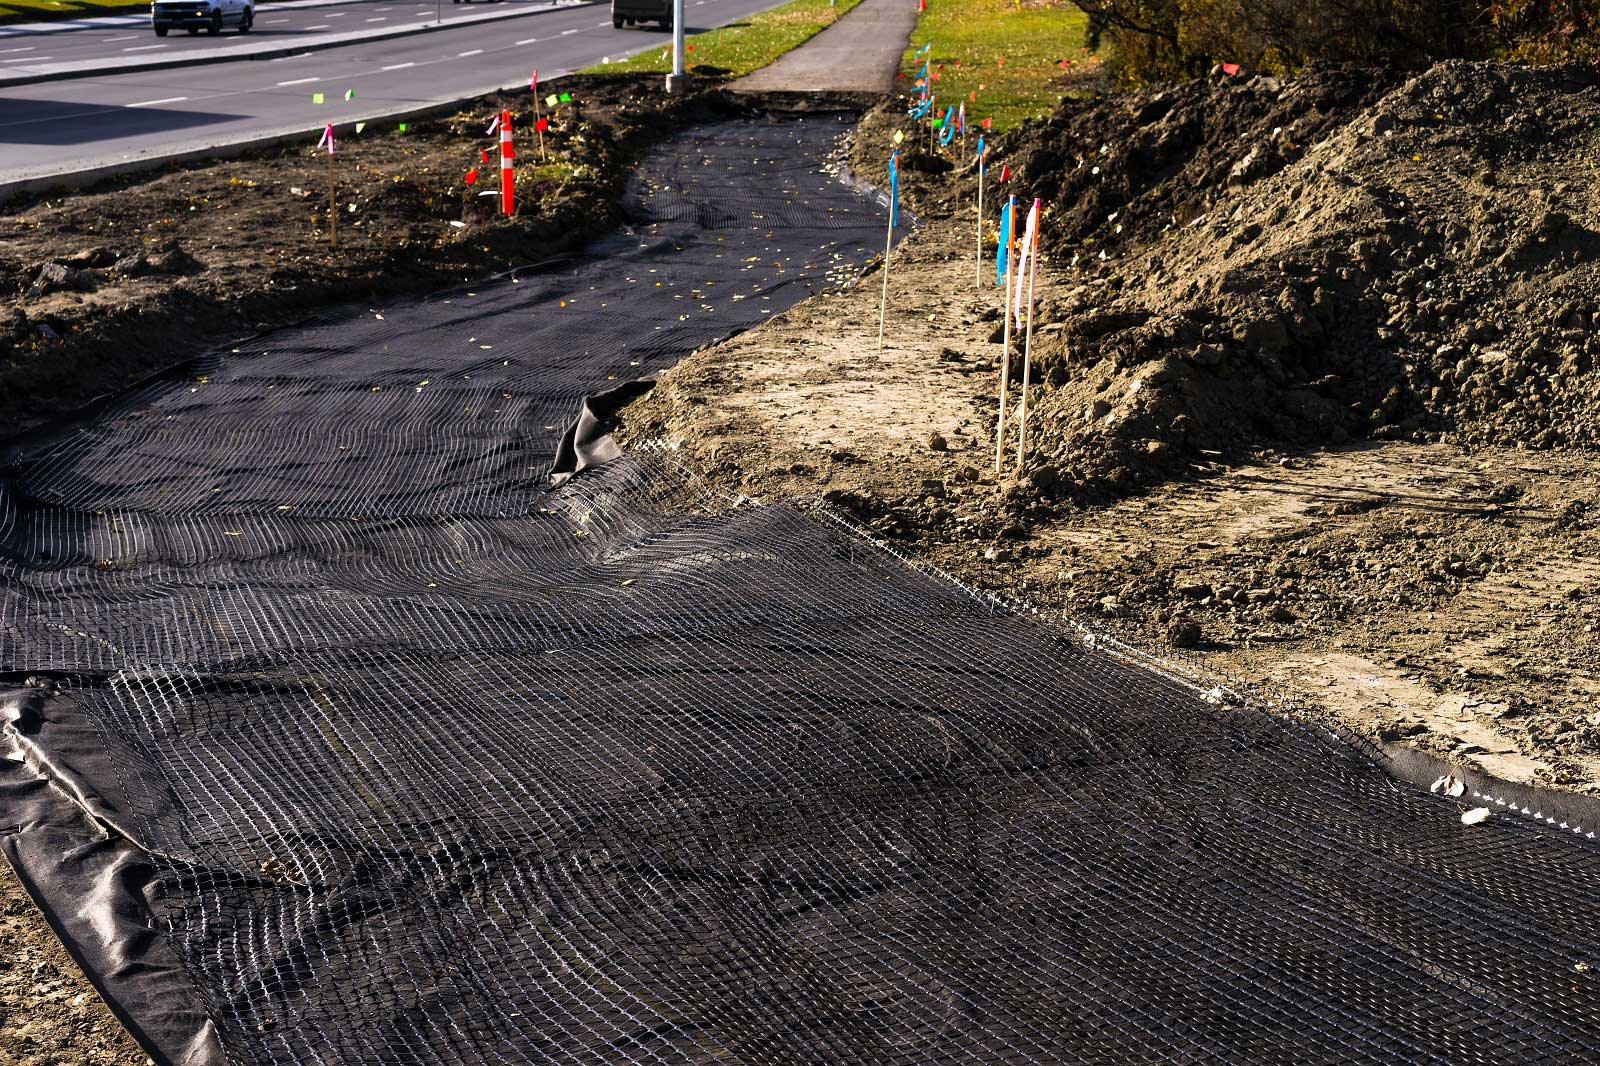 What Are Geotextiles Used For? Planning the area for installing